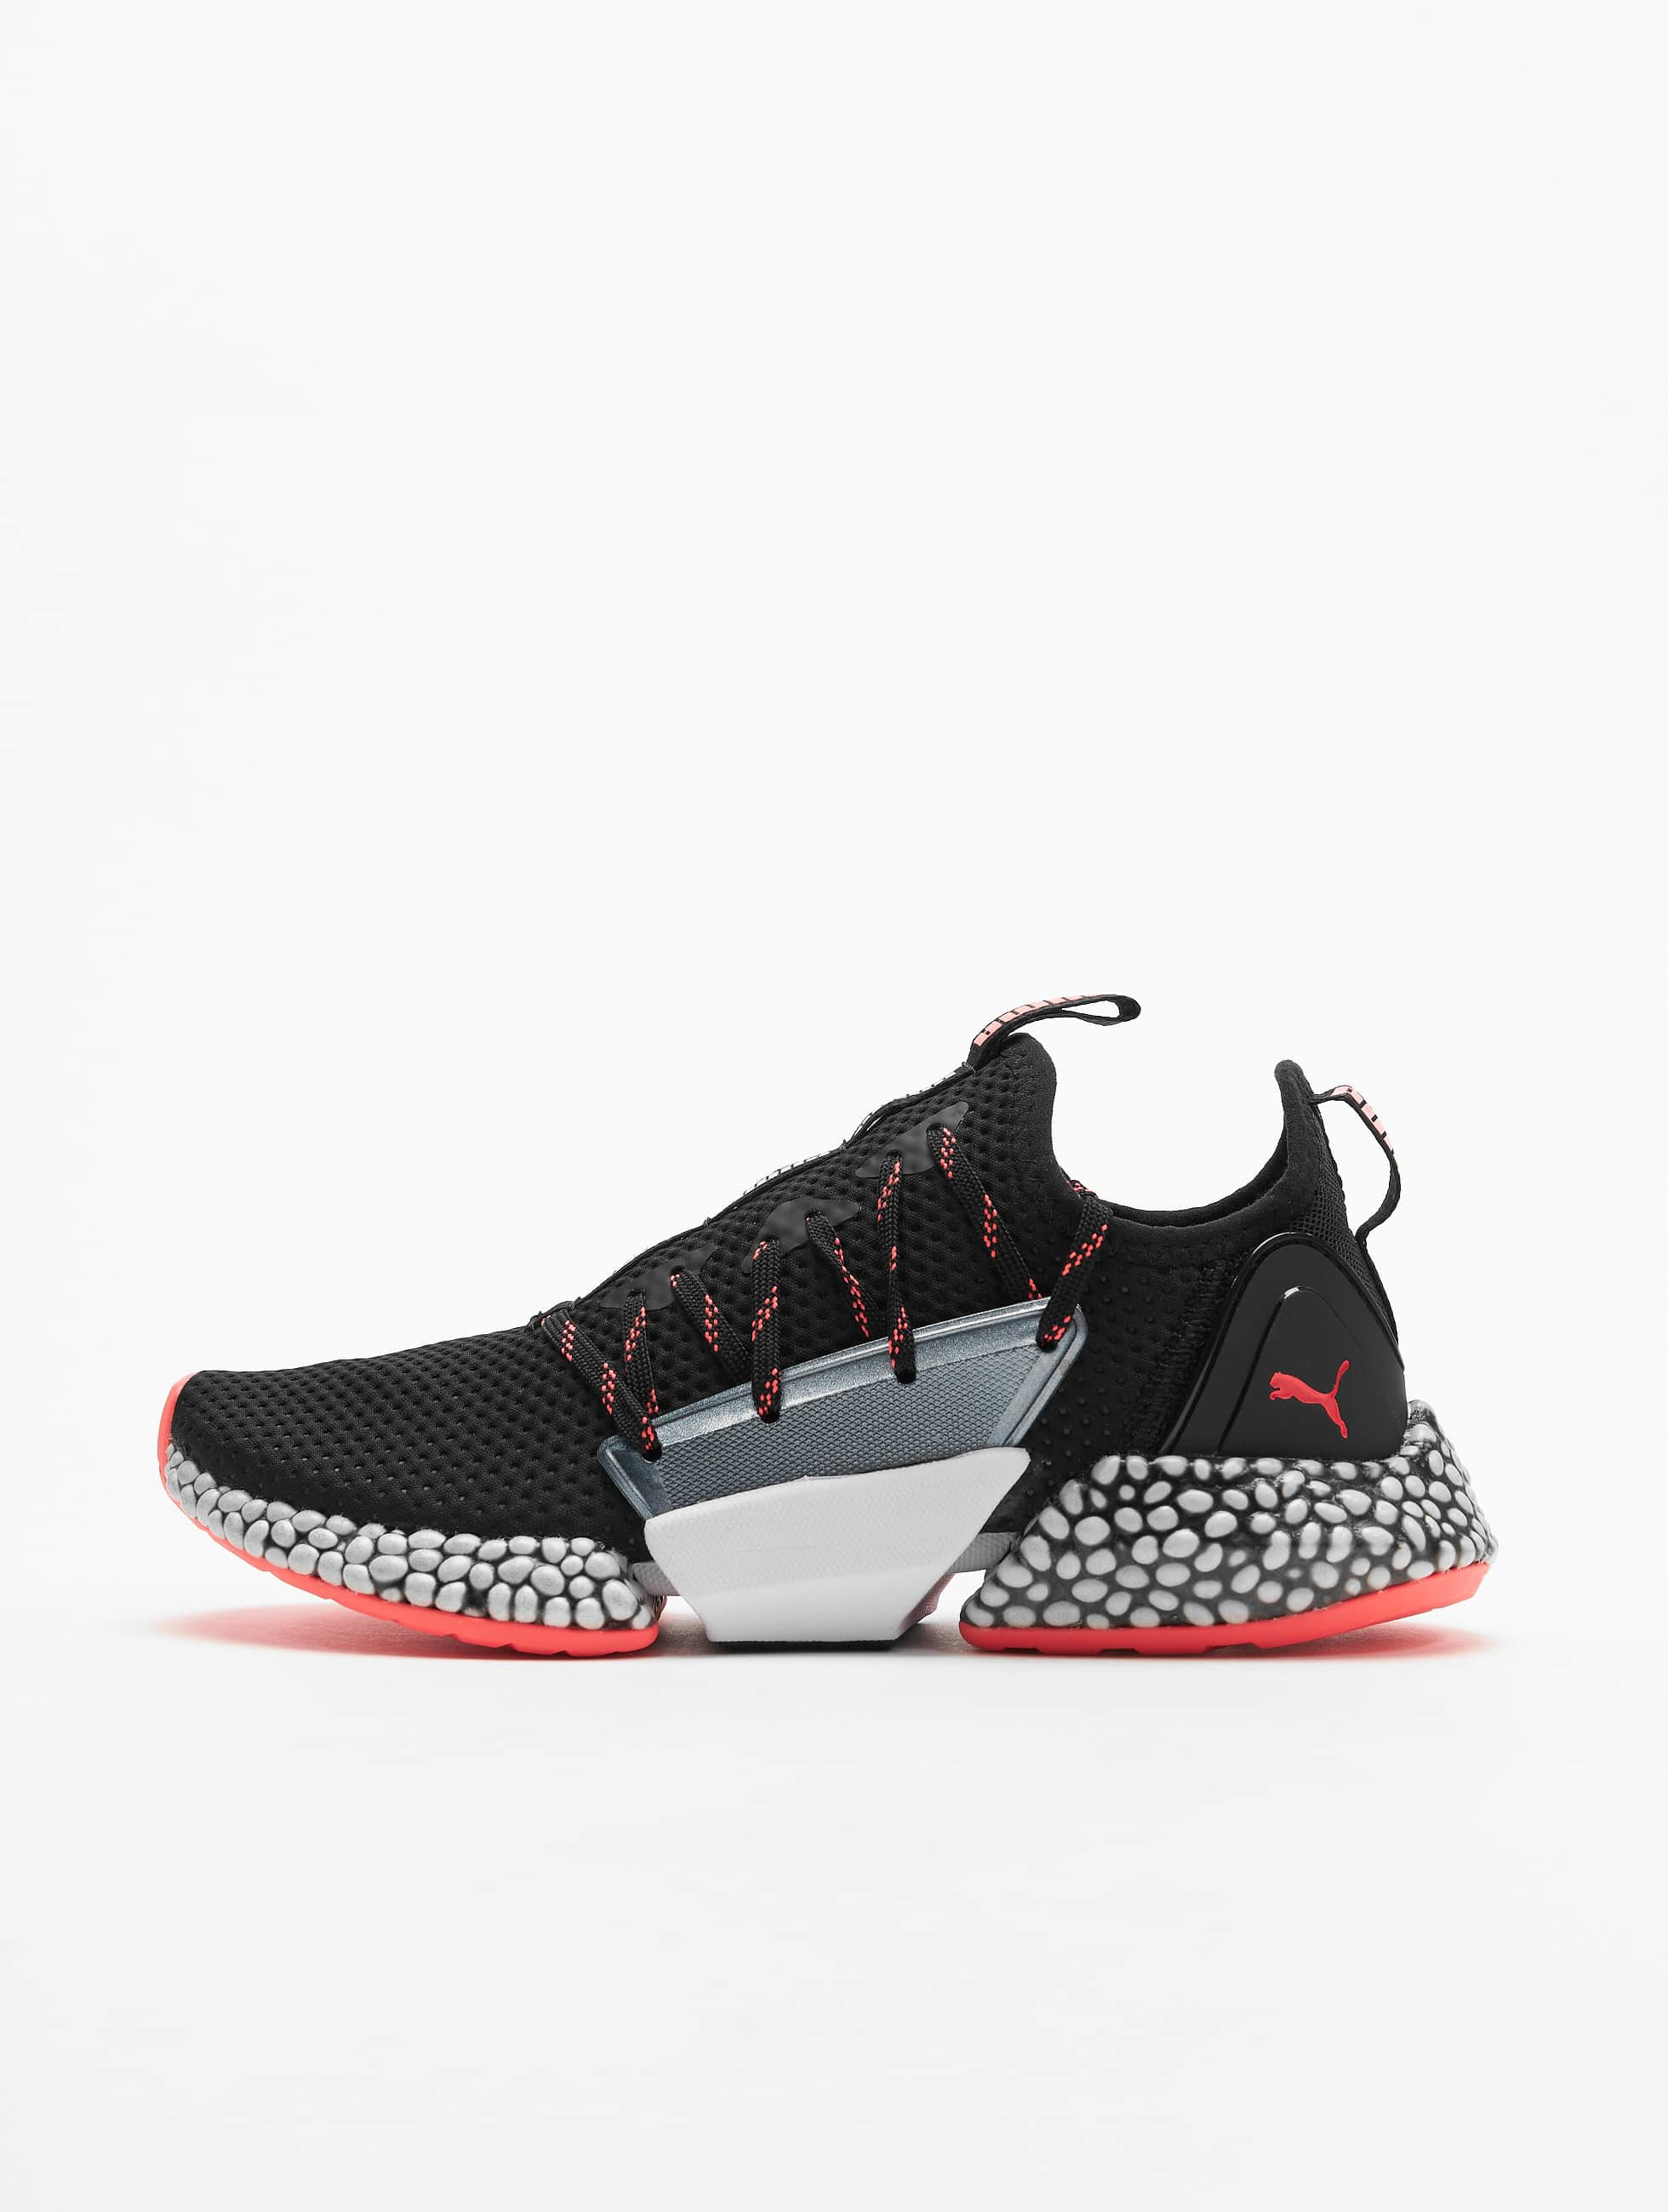 Puma Performance Hybrid Rocket Aero Trainingsschuhe Puma BlackPink Alert